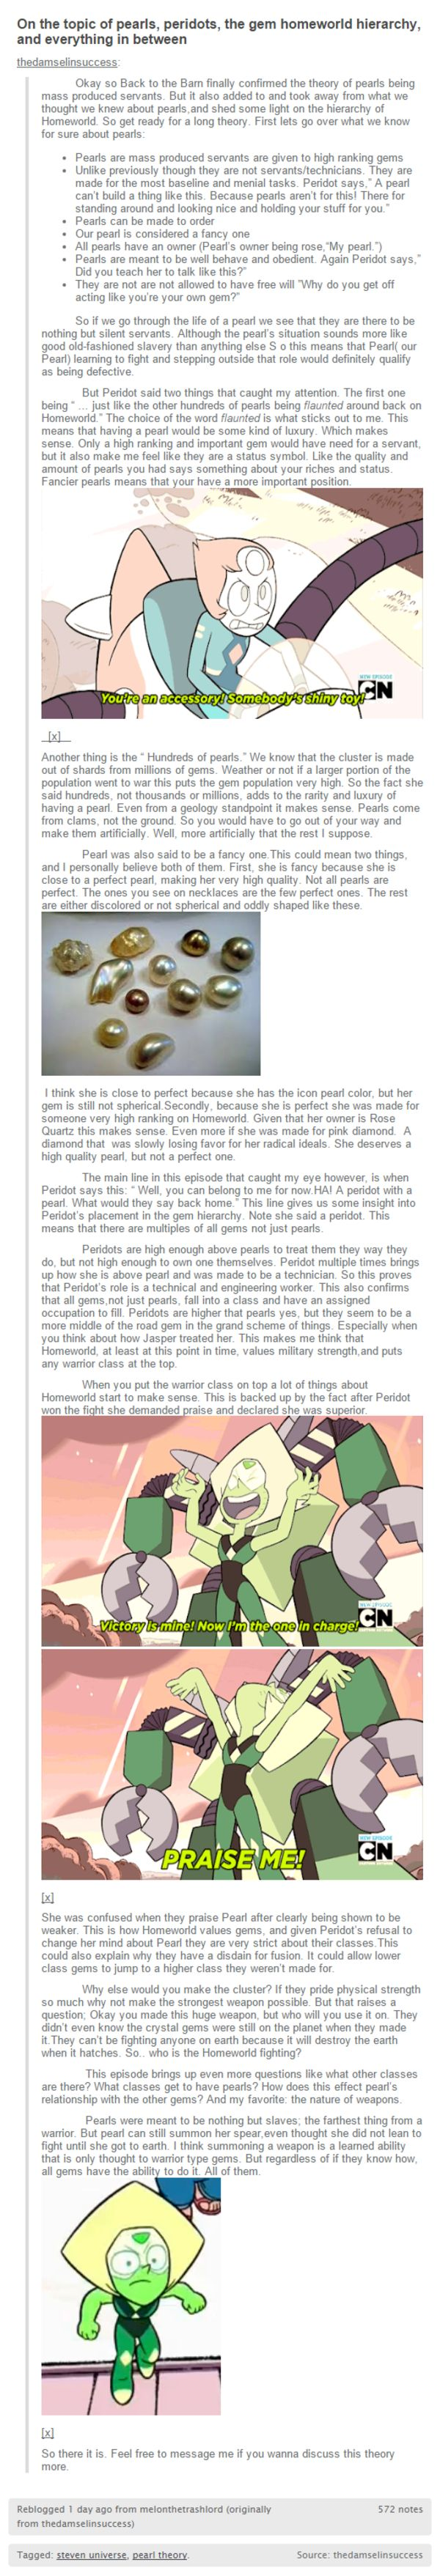 See more 'Steven Universe' images on Know Your Meme!<<< OMG! That explains why Peridot didn't summon her weapon when her and Steven were cornered by the mini clusters, she didn't know how because she was never taught! That bothered me so much while watching that episode.